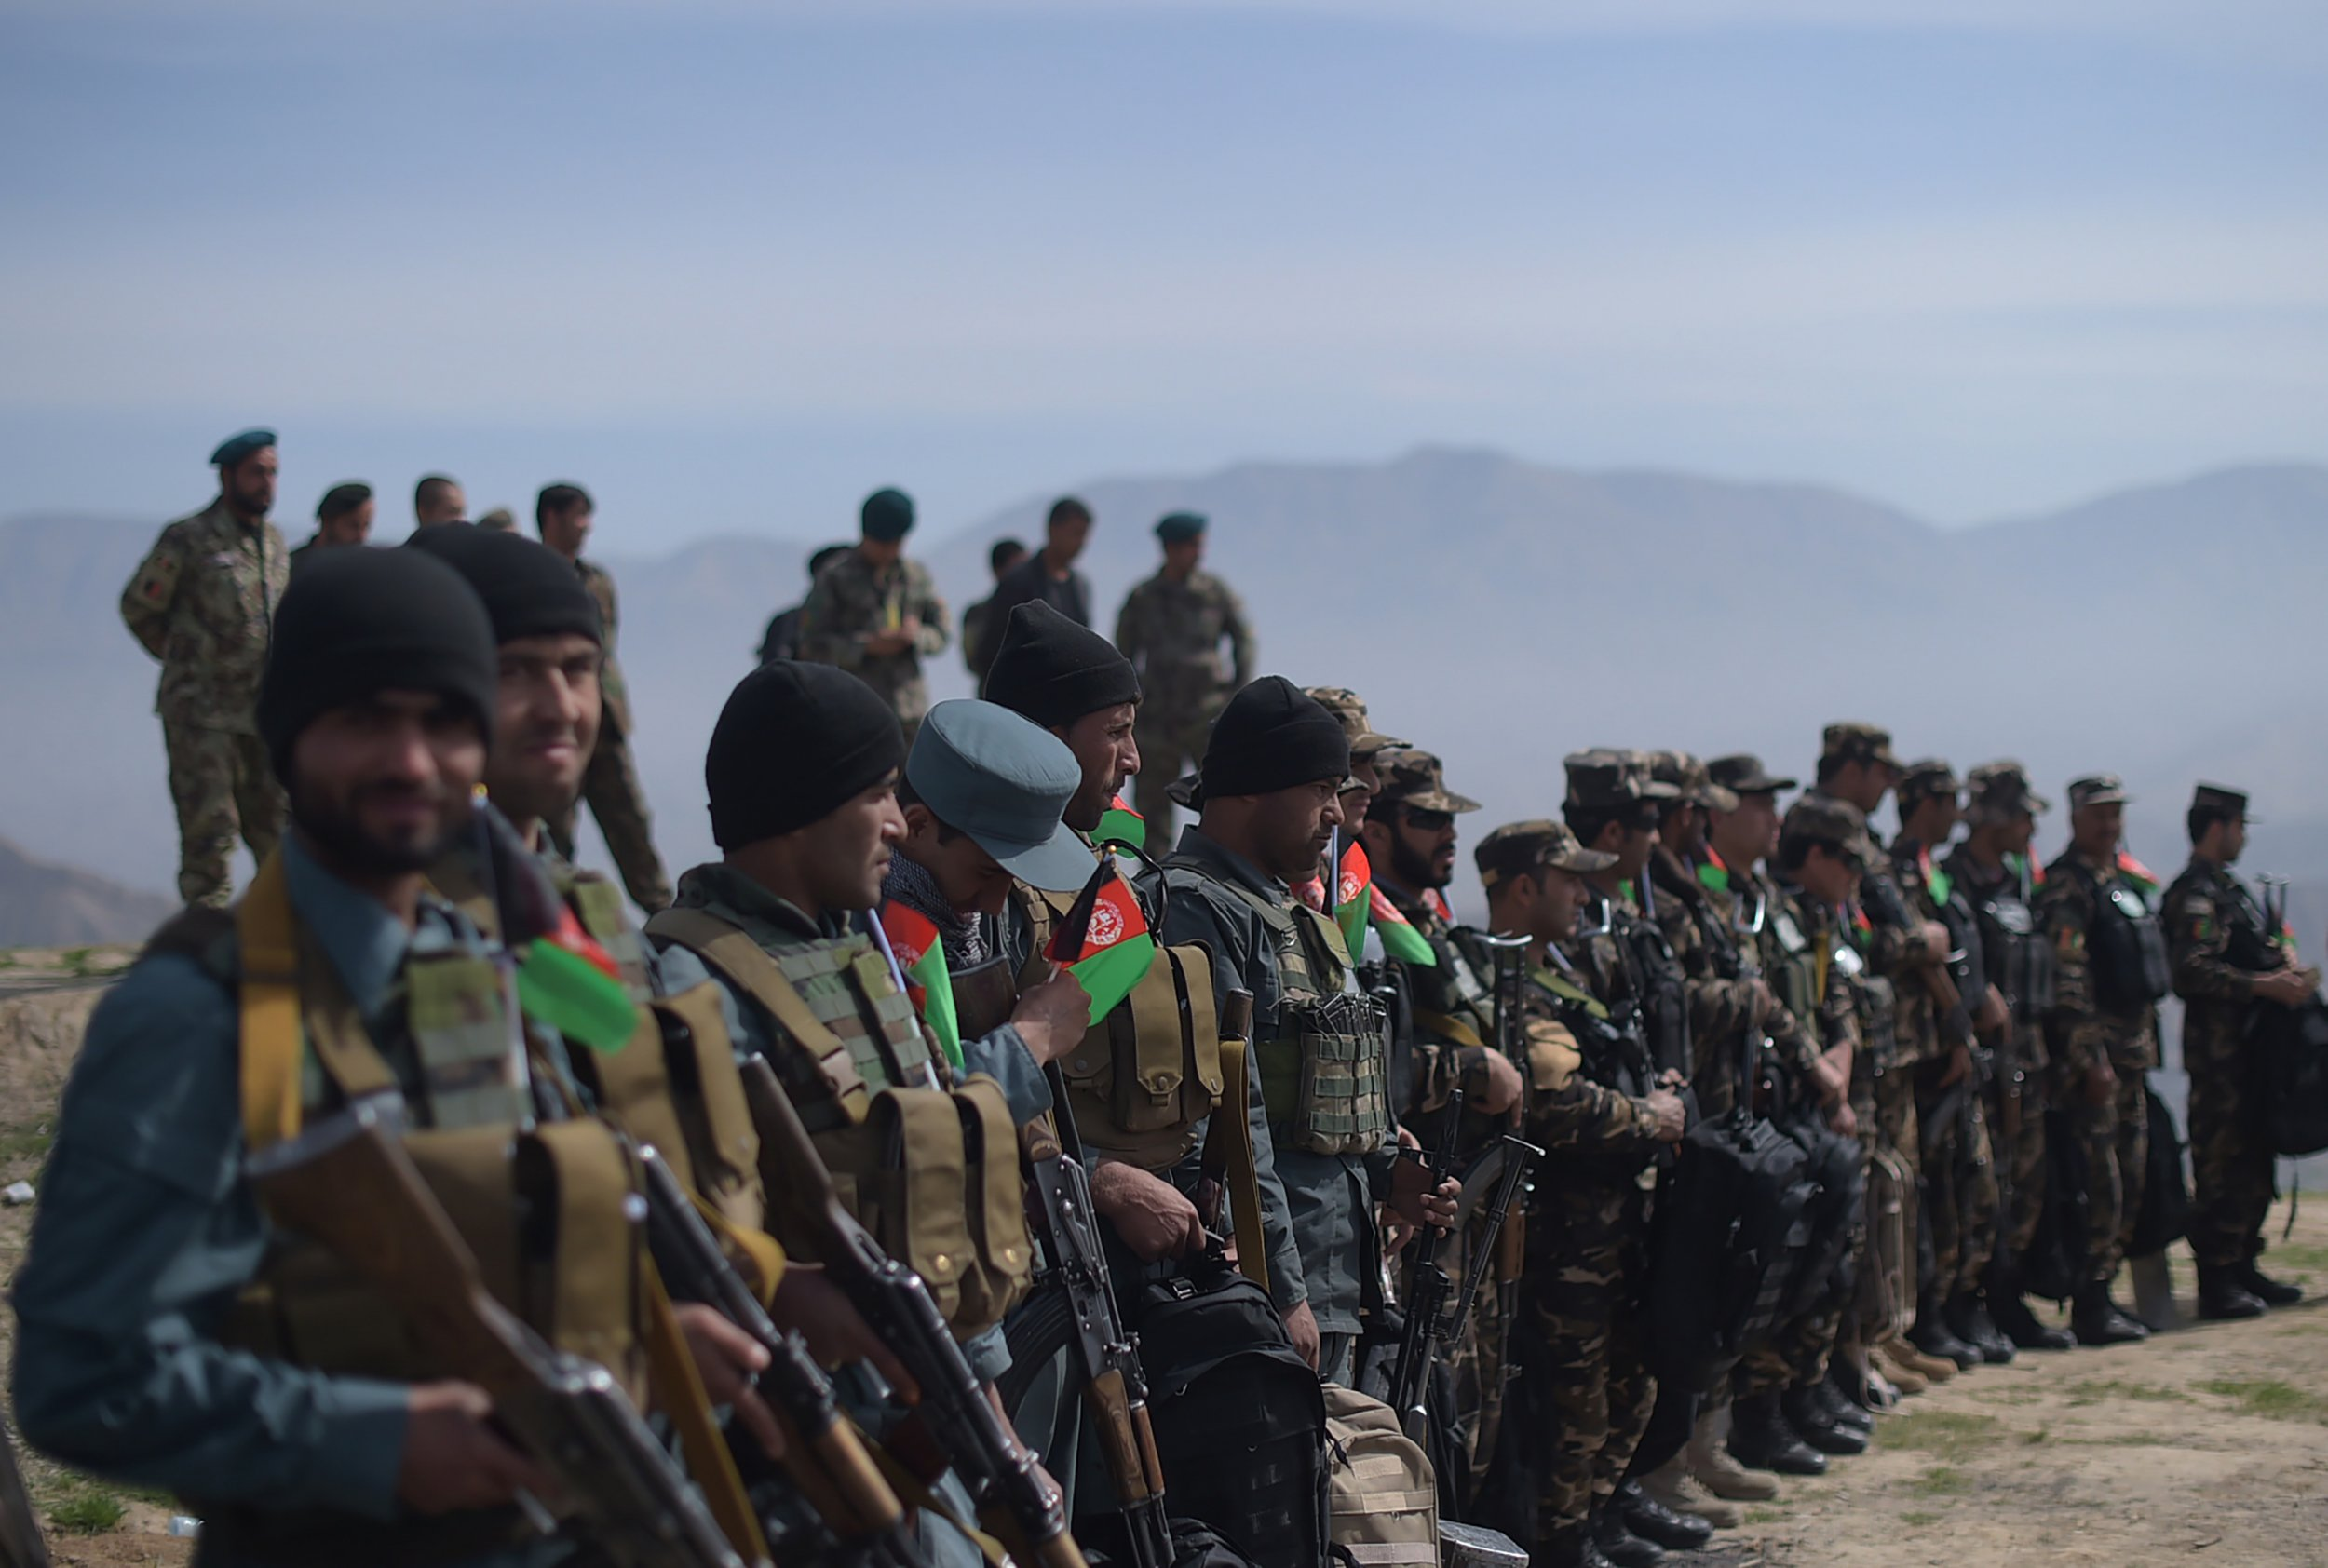 Afghan soldiers line up after weeks of fighting against the Taliban.